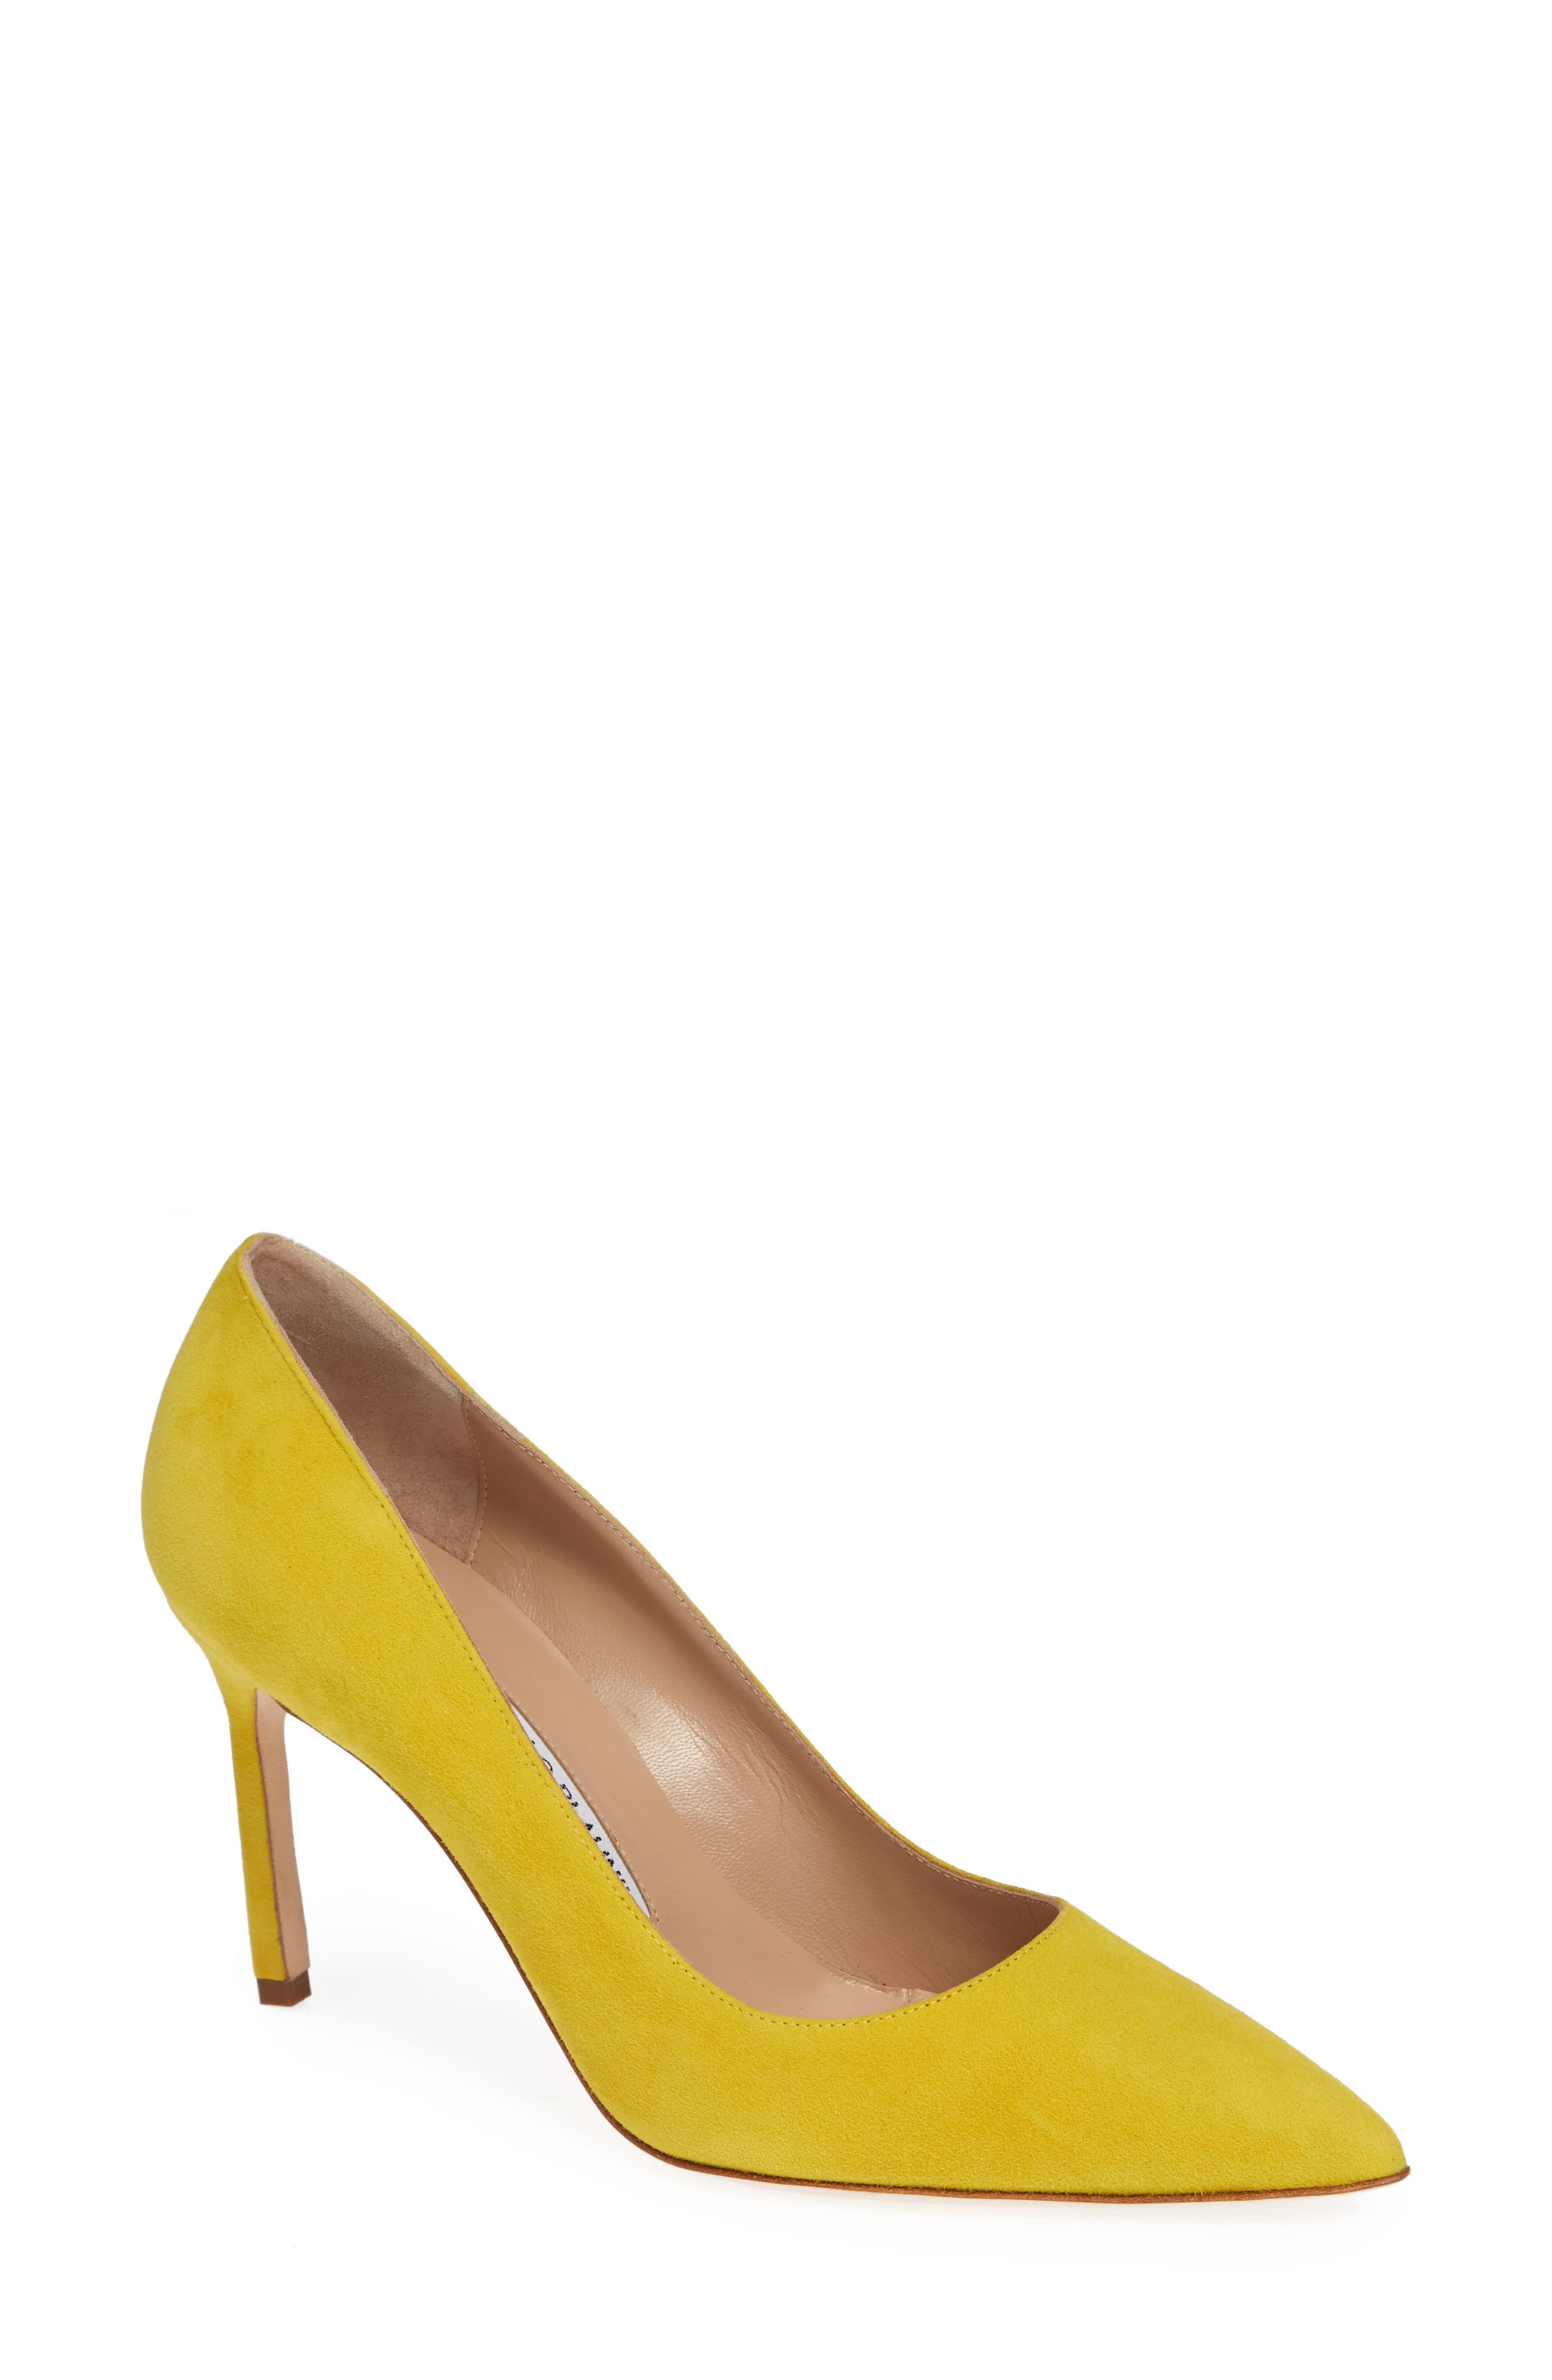 MANOLO BLAHNIK, BB Pointy Toe Pump, Main thumbnail 1, color, LEMON YELLOW SUEDE